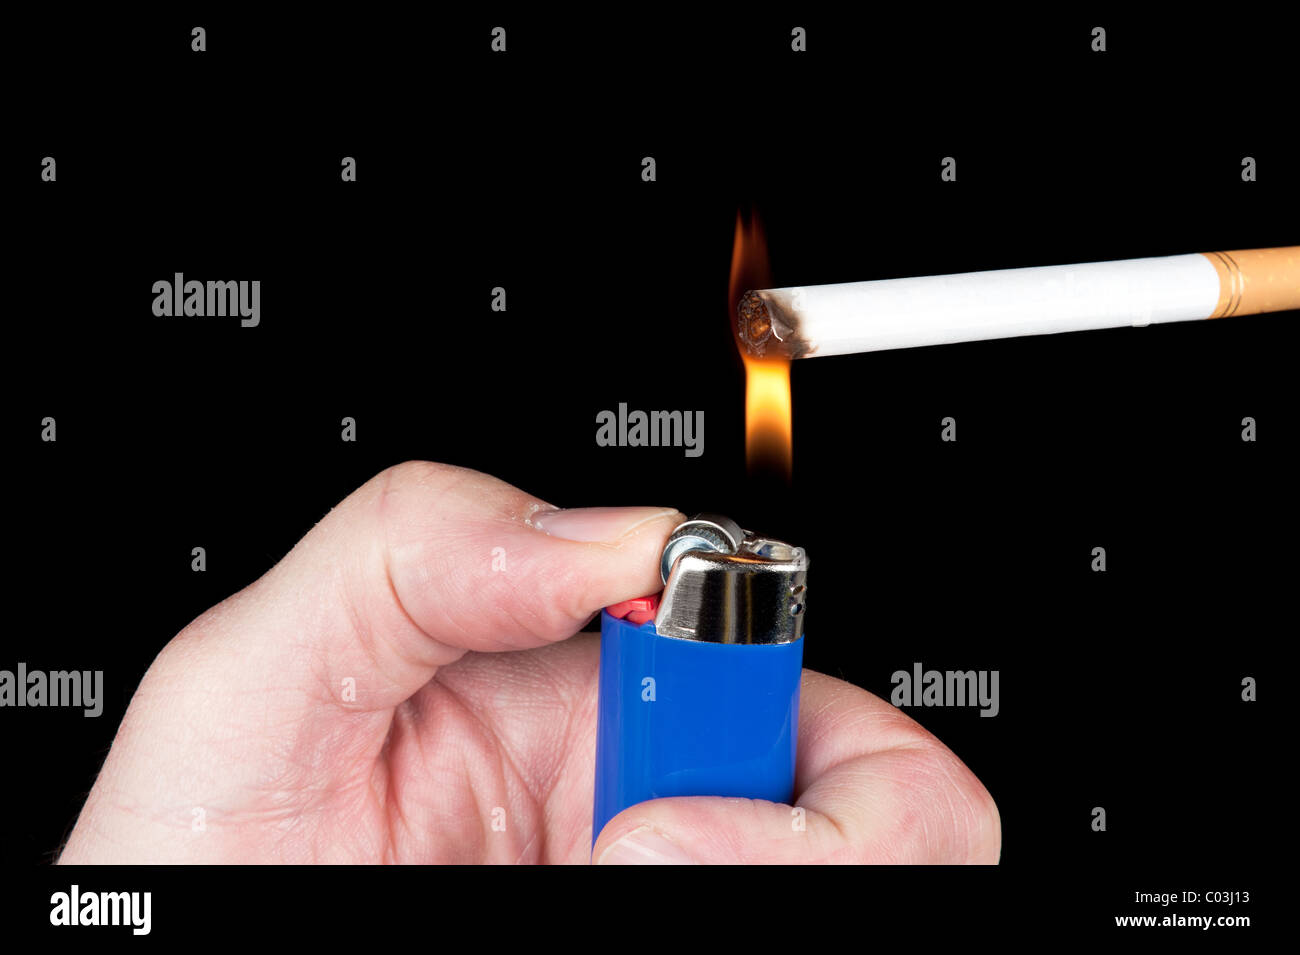 A person lights a cigarette with a blue butane lighter. - Stock Image